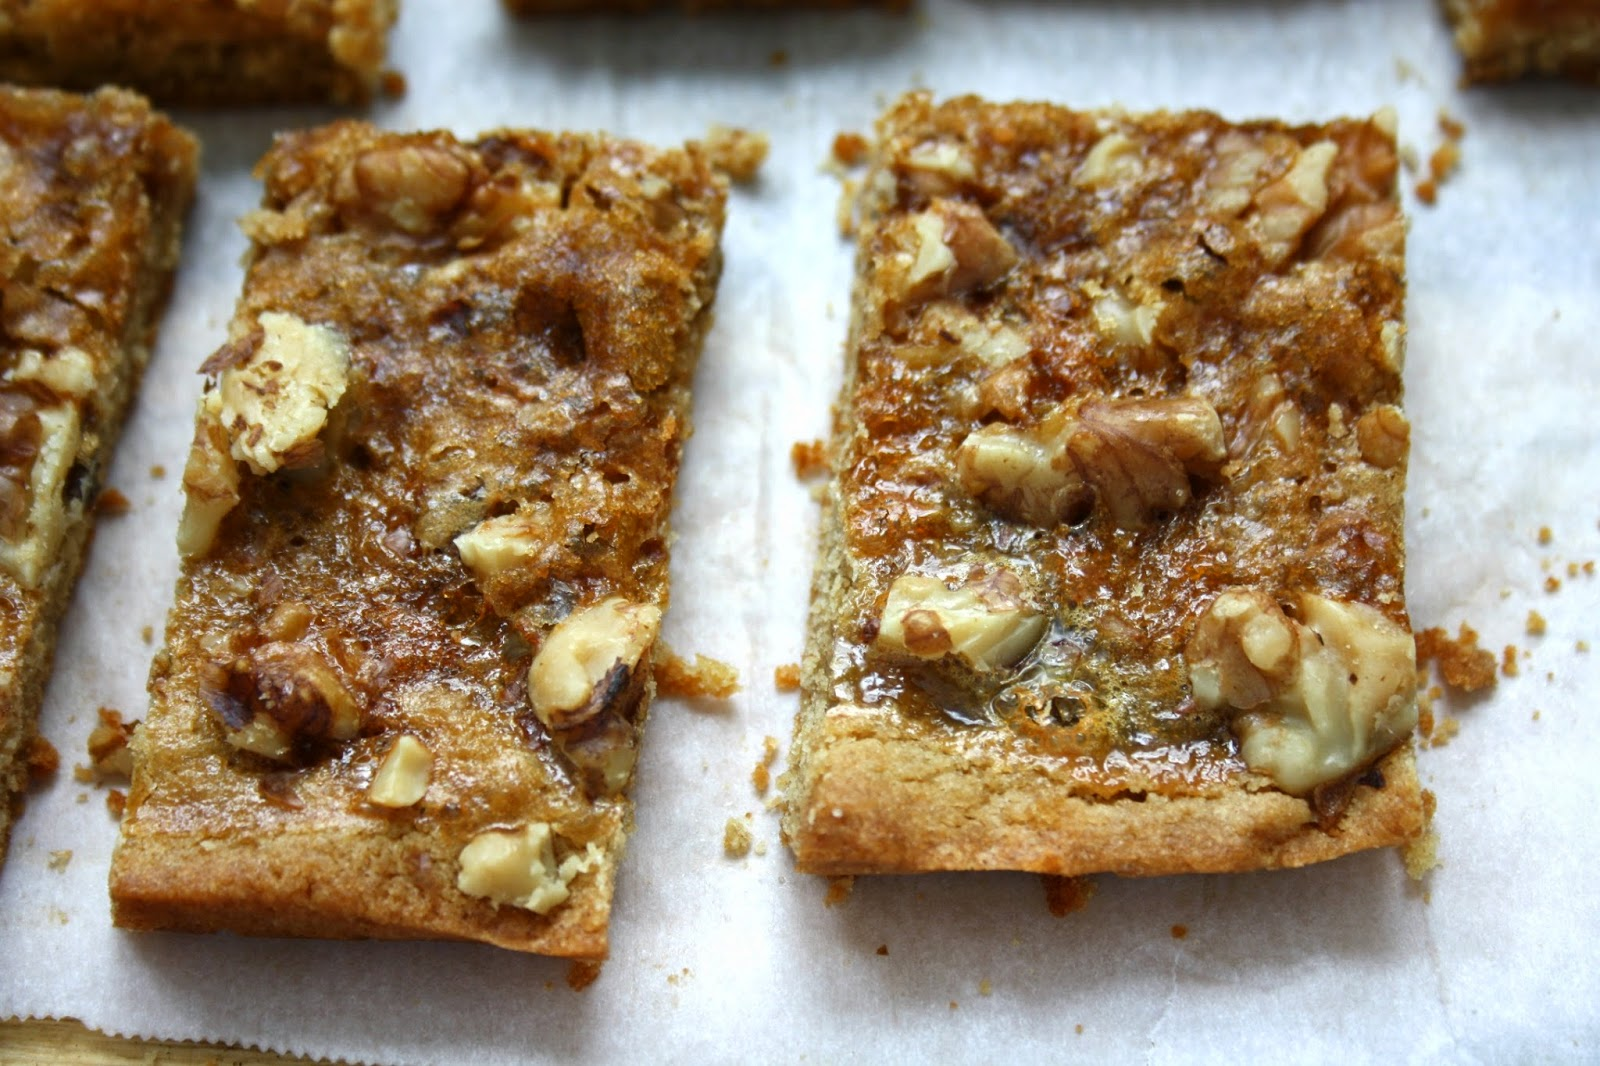 Pecan bars with a shortbread base and crunchy nut topping